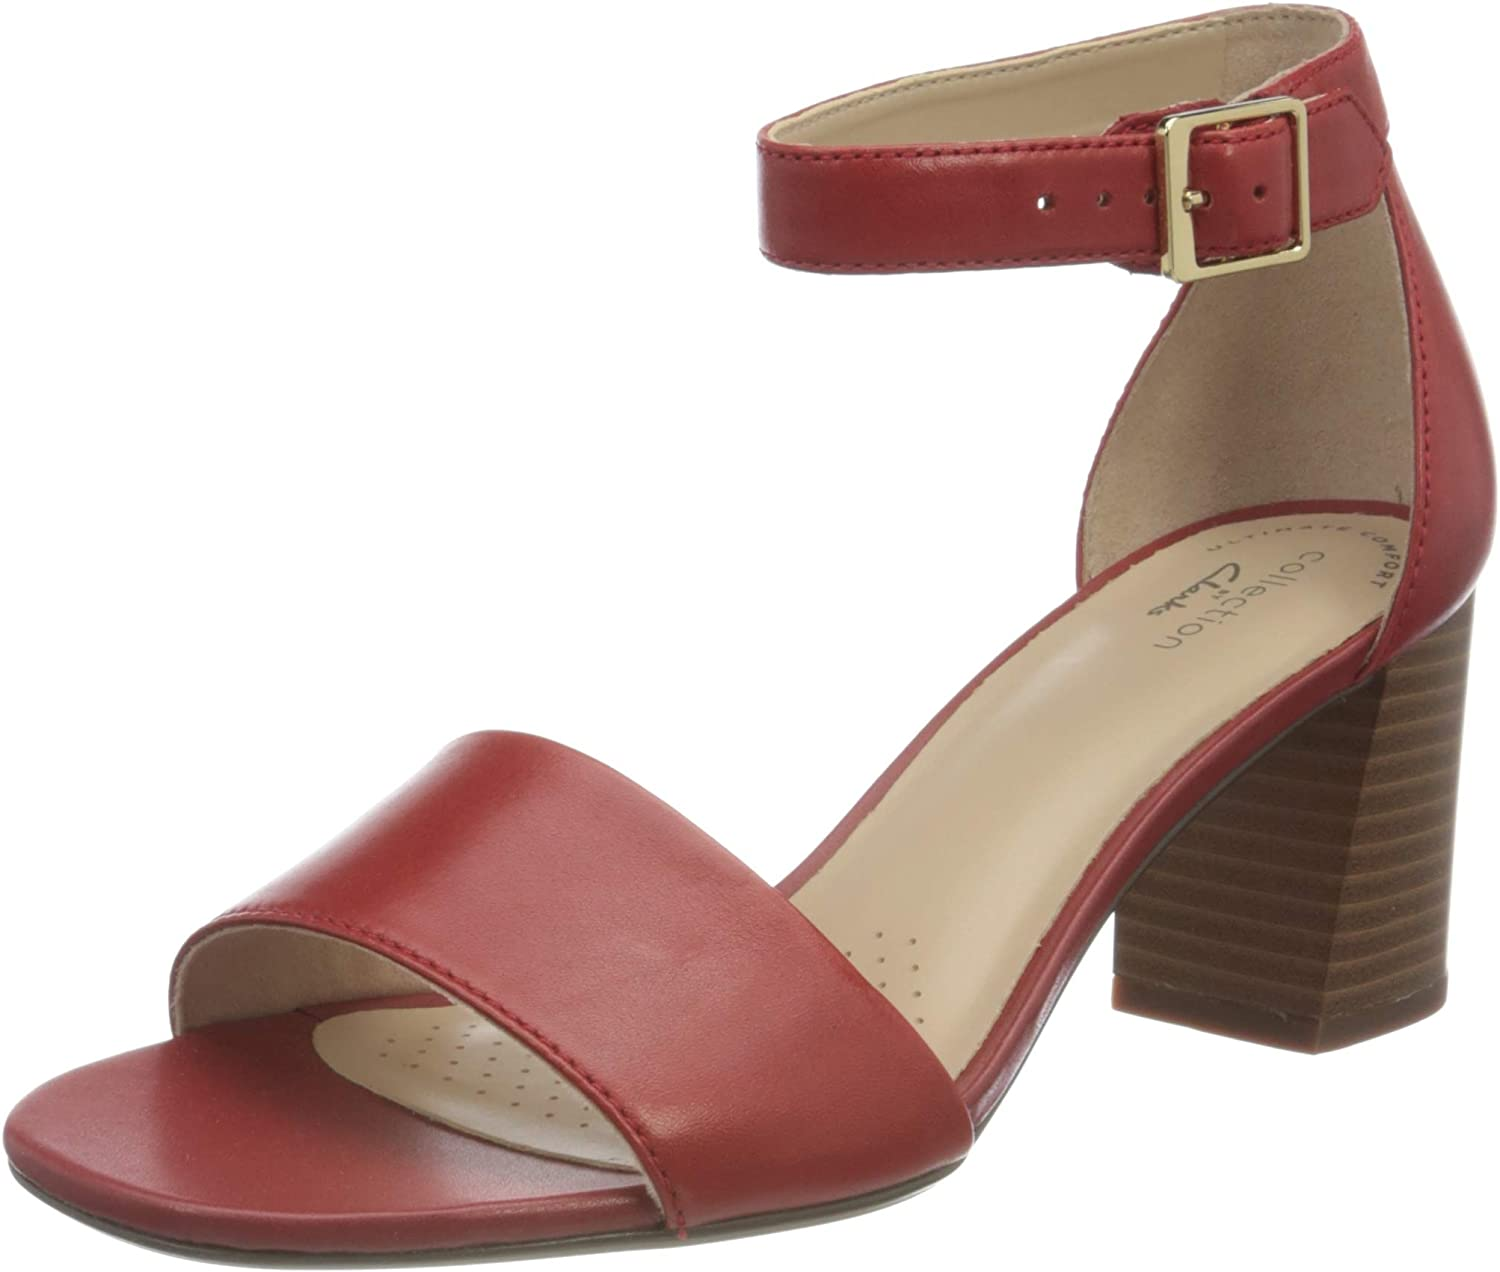 Max 54% OFF Clarks Women's Ankle Miami Mall Strap Sandals